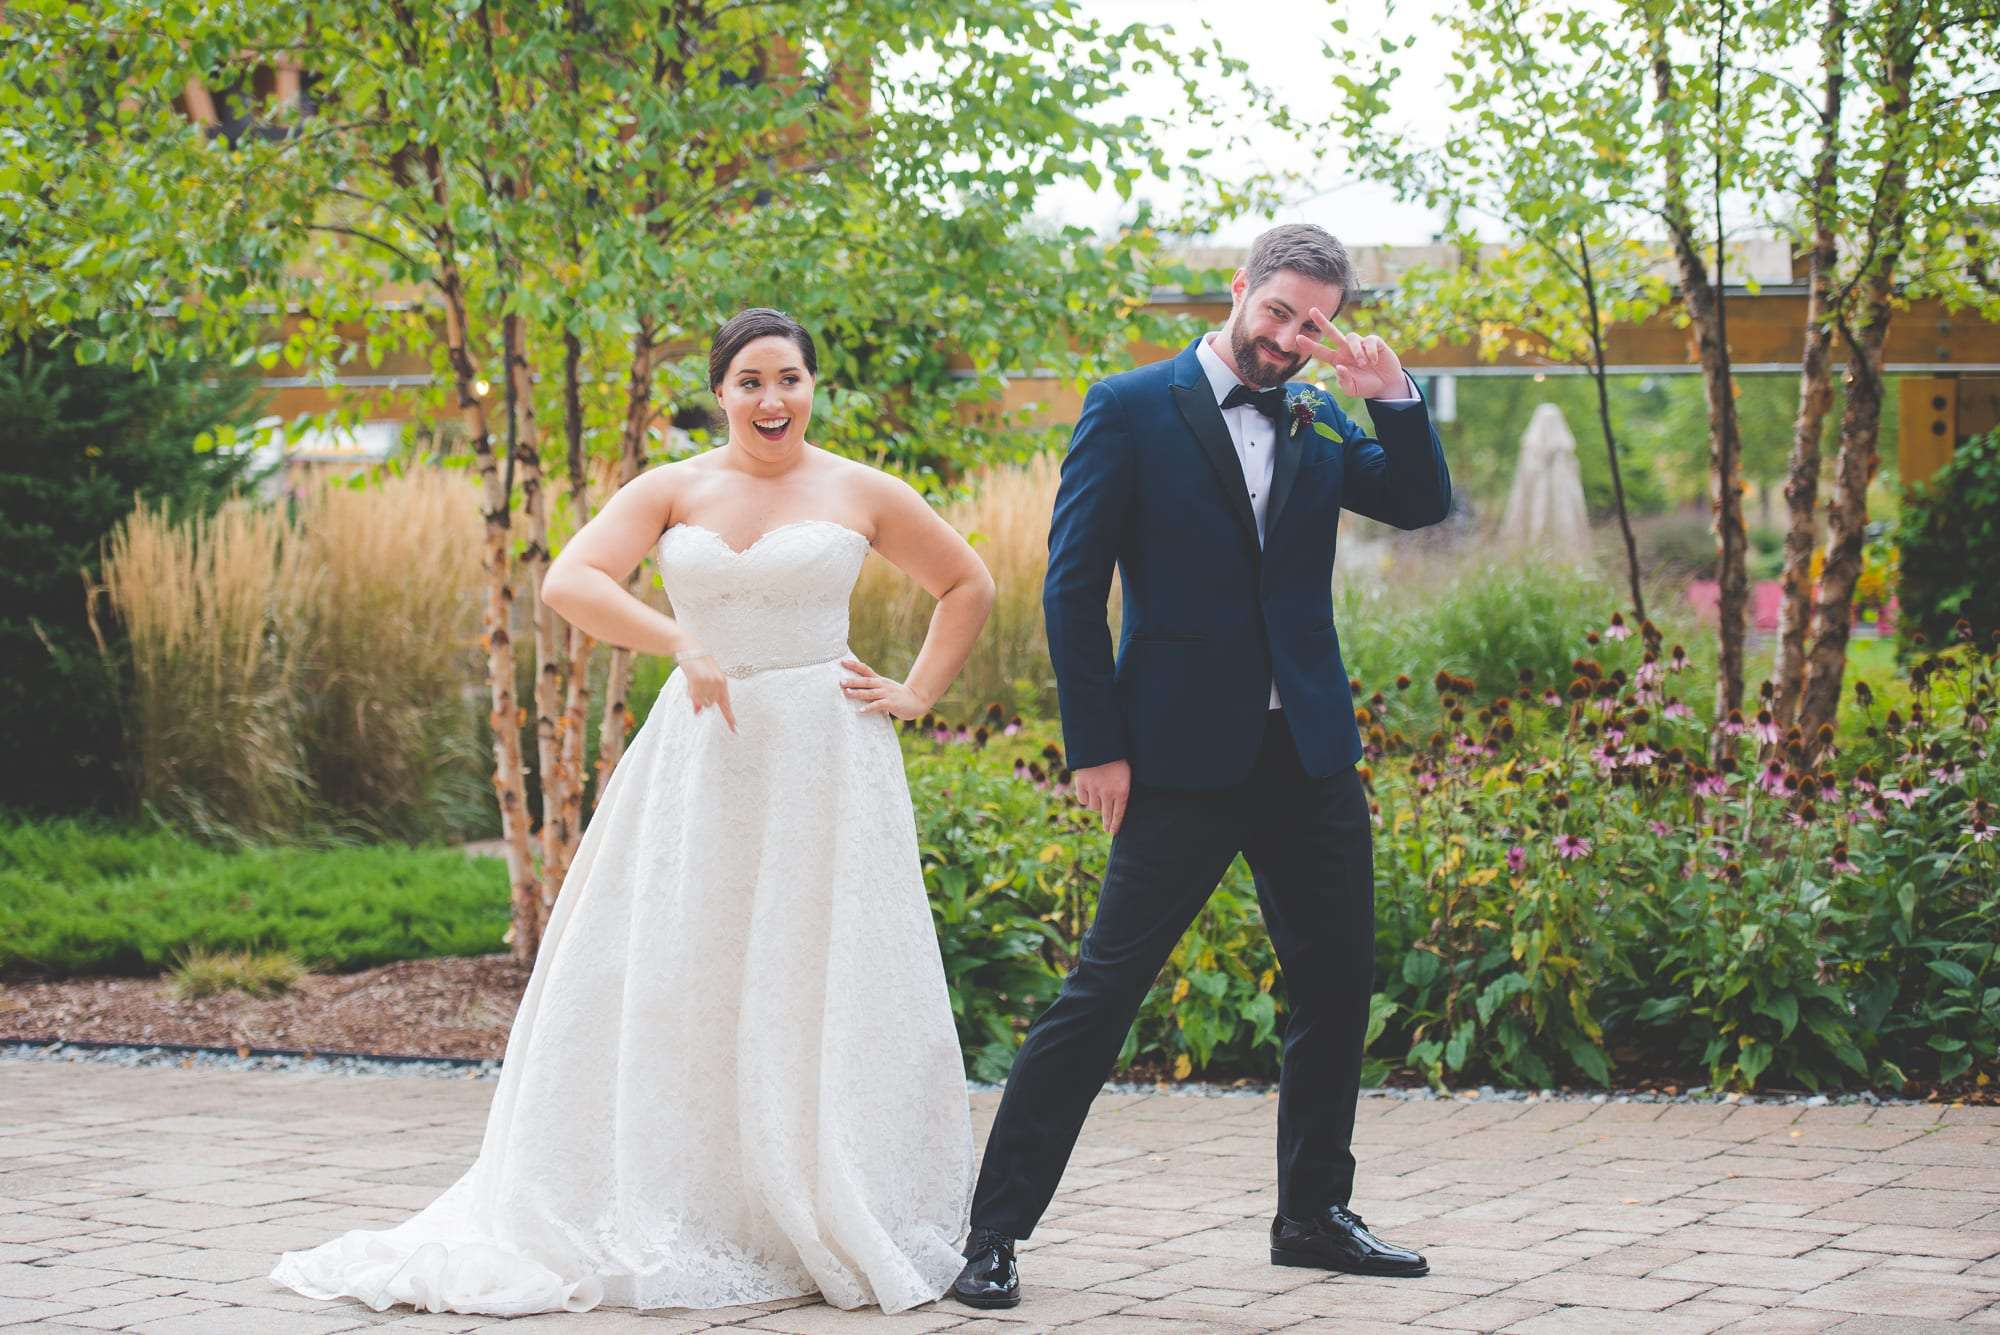 Fun wedding photos The Lodge at Spruce Peak Wedding VT